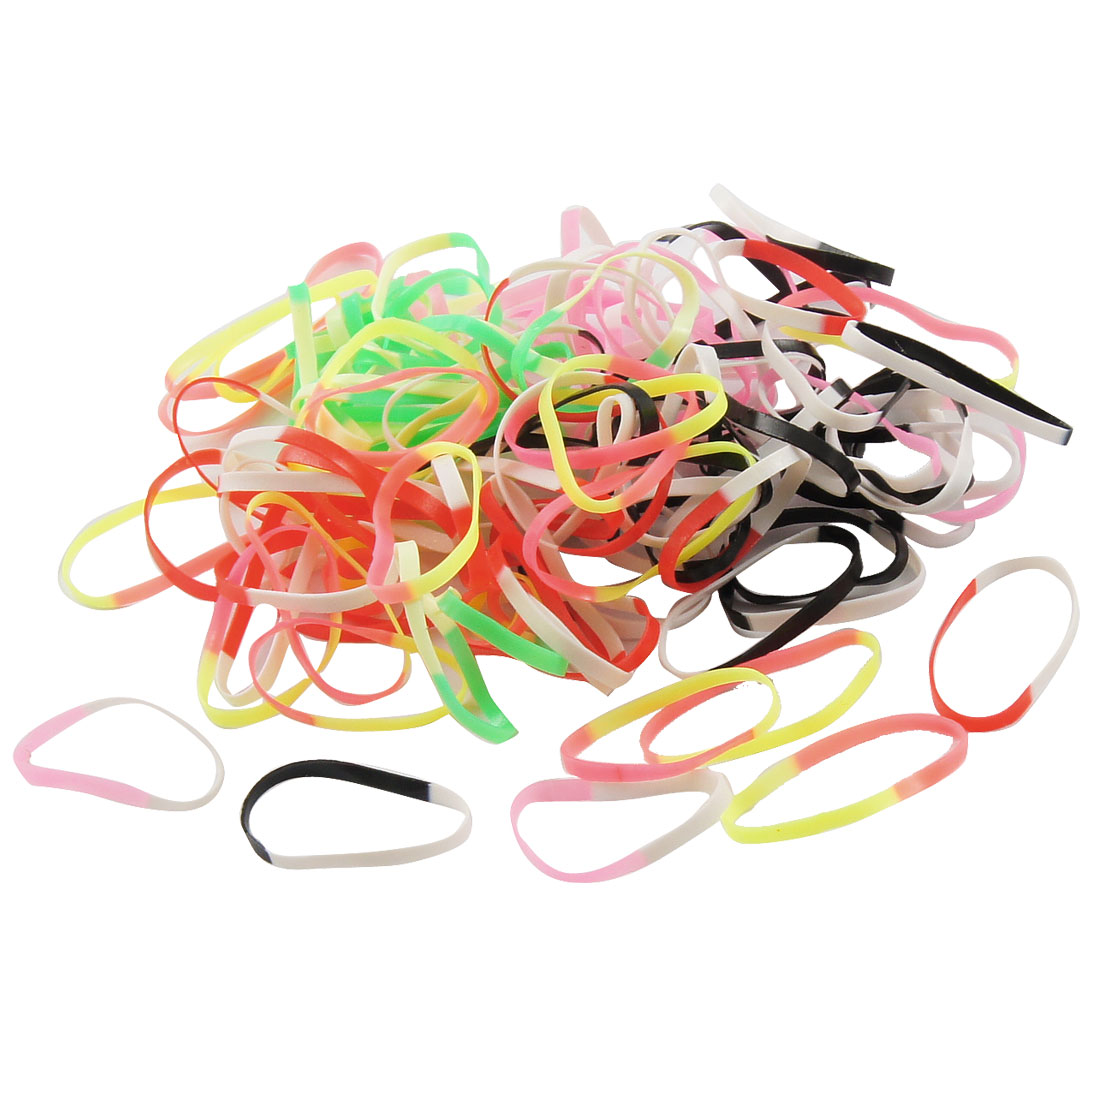 900 Pcs 6 Pack 7 Colors Rubber Elastic Hair Band Ponytail Holder